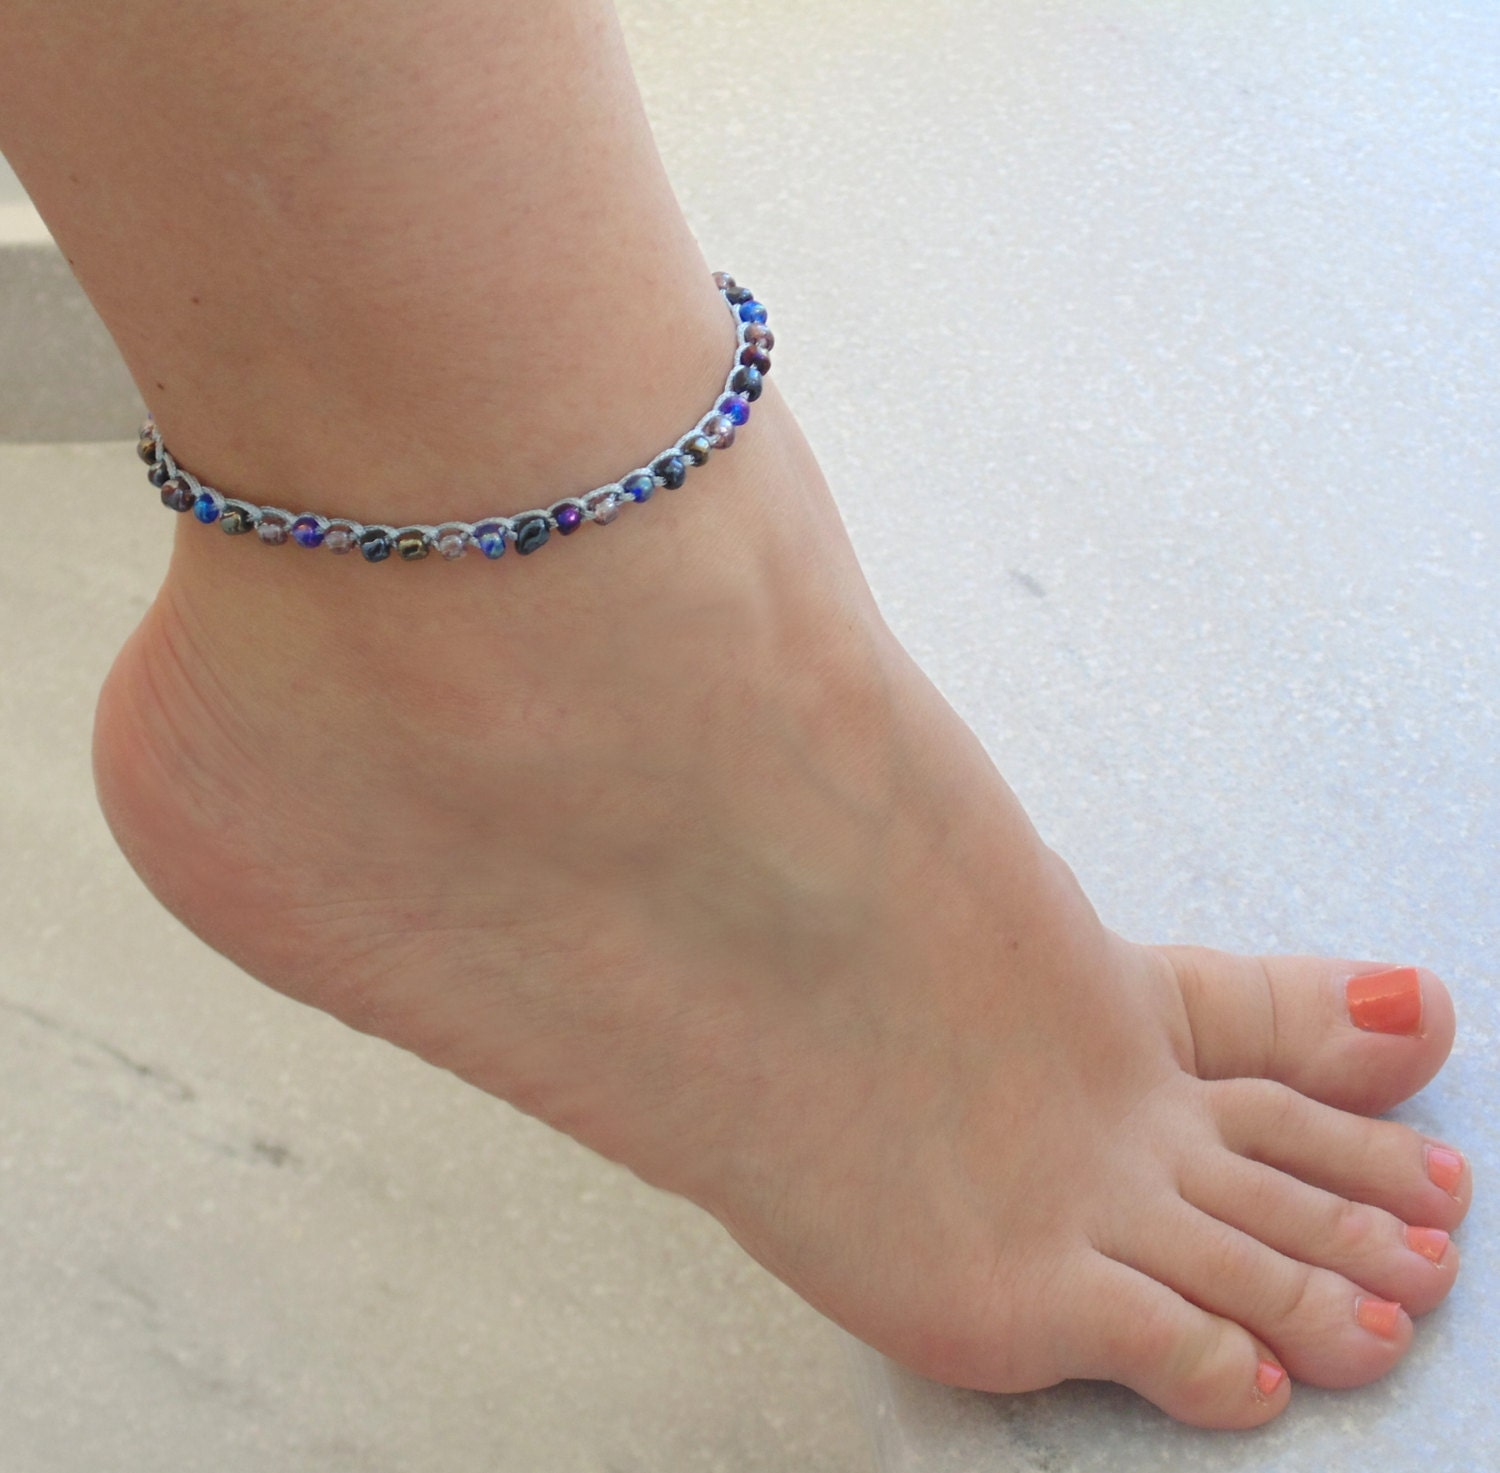 heart new ankle chain directly sexy diomedes suppliers from china can quality beach gussy life where sandal double anklet wholesale anklets bracelet pin girls cheap i jewelry bracelets women buy